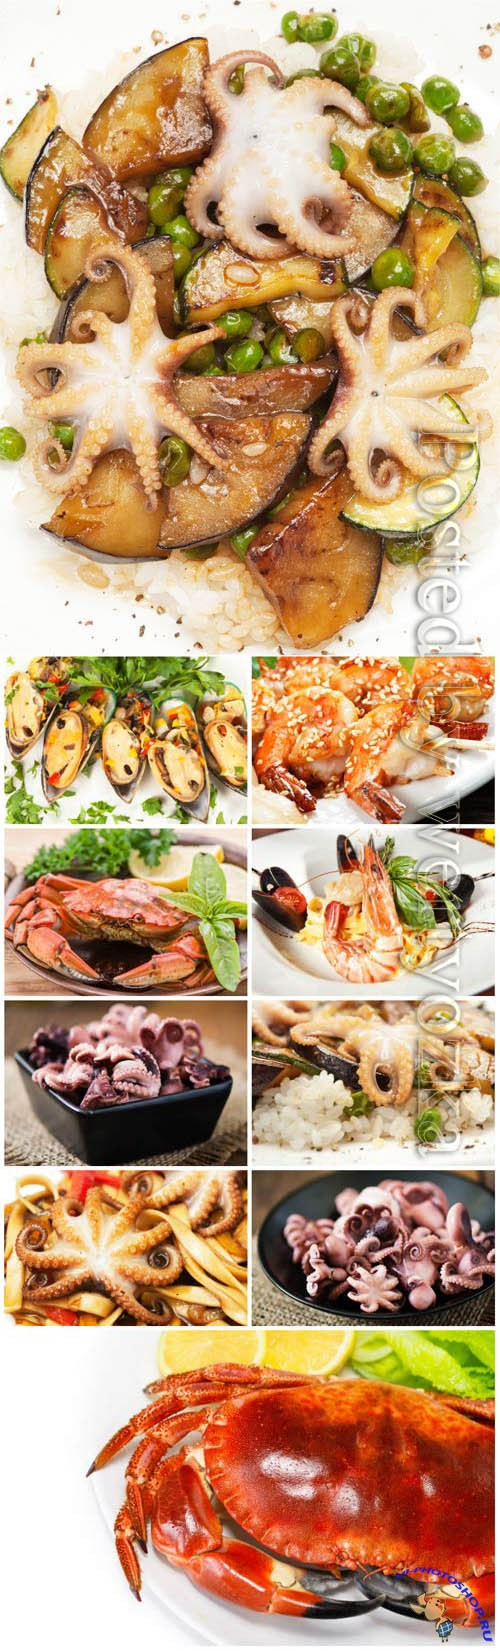 Seafood, delicious food stock photo